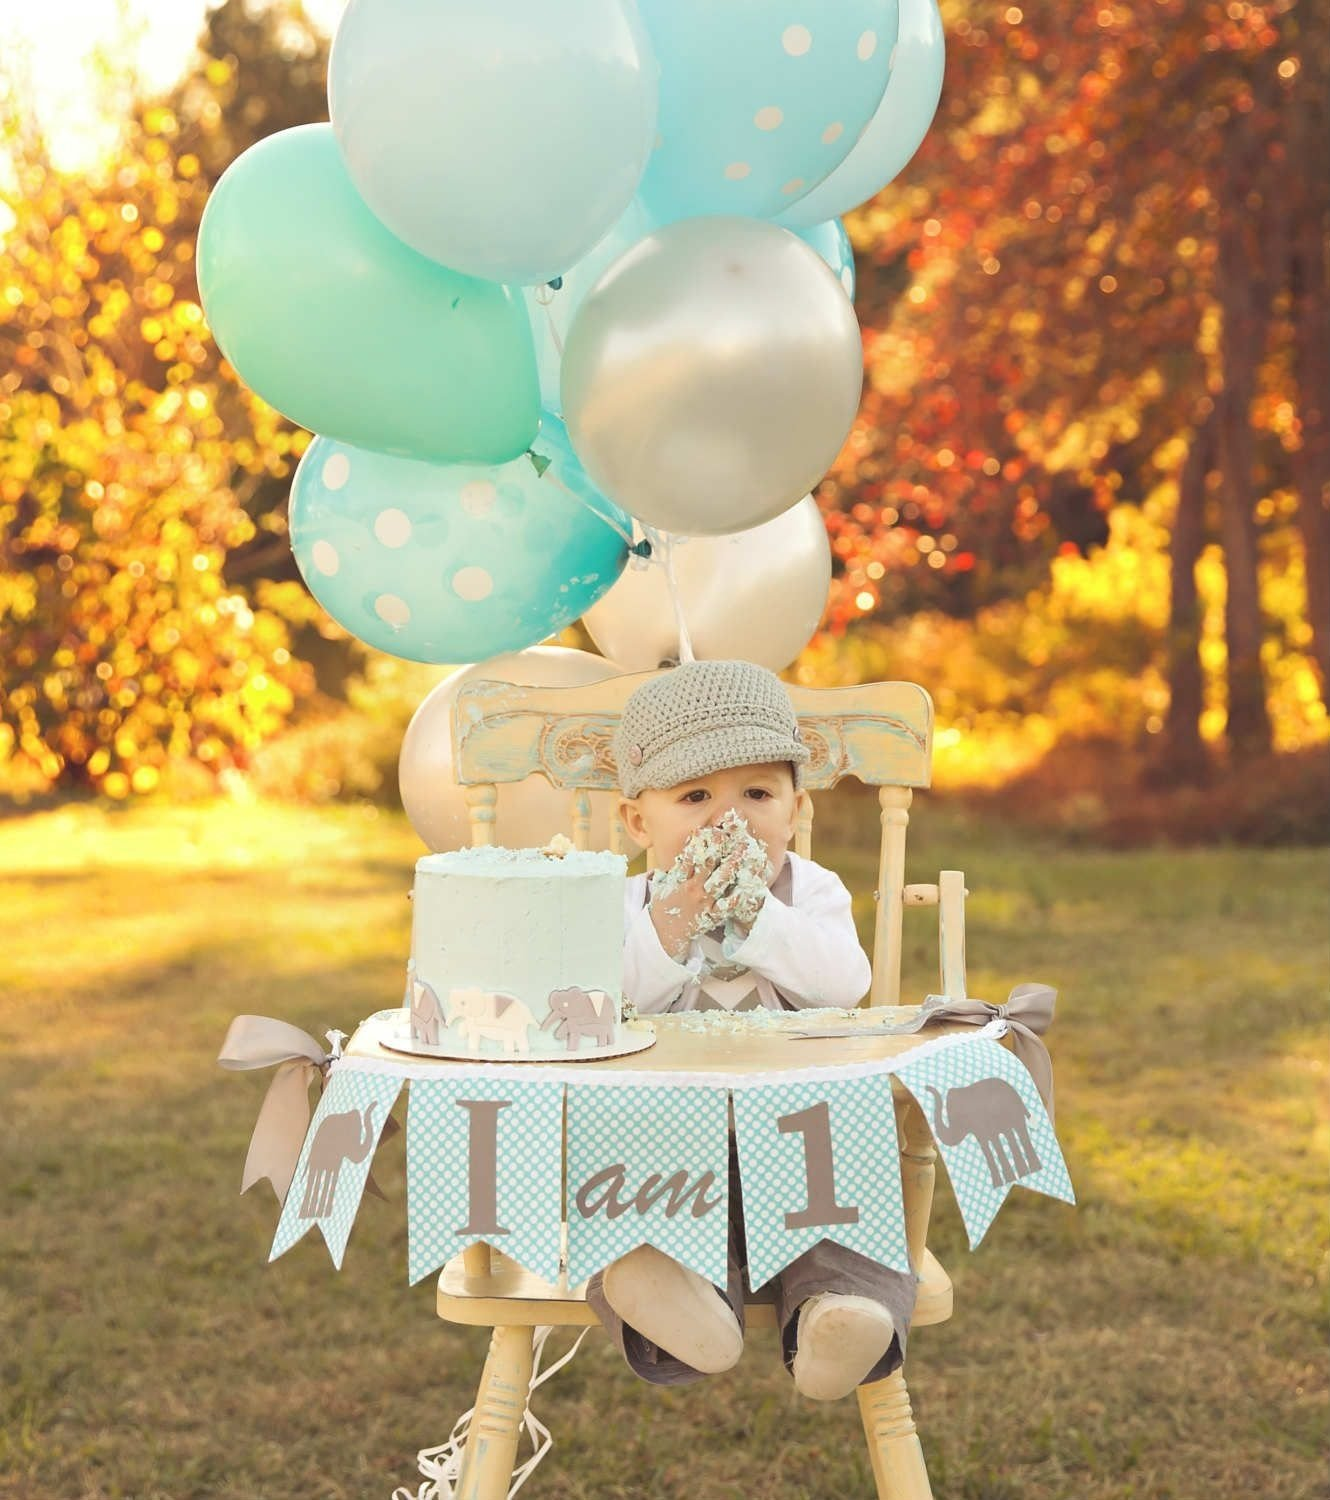 10 Stunning 1St Year Birthday Party Ideas 10 1st birthday party ideas for boys part 2 birthday decorations 3 2020